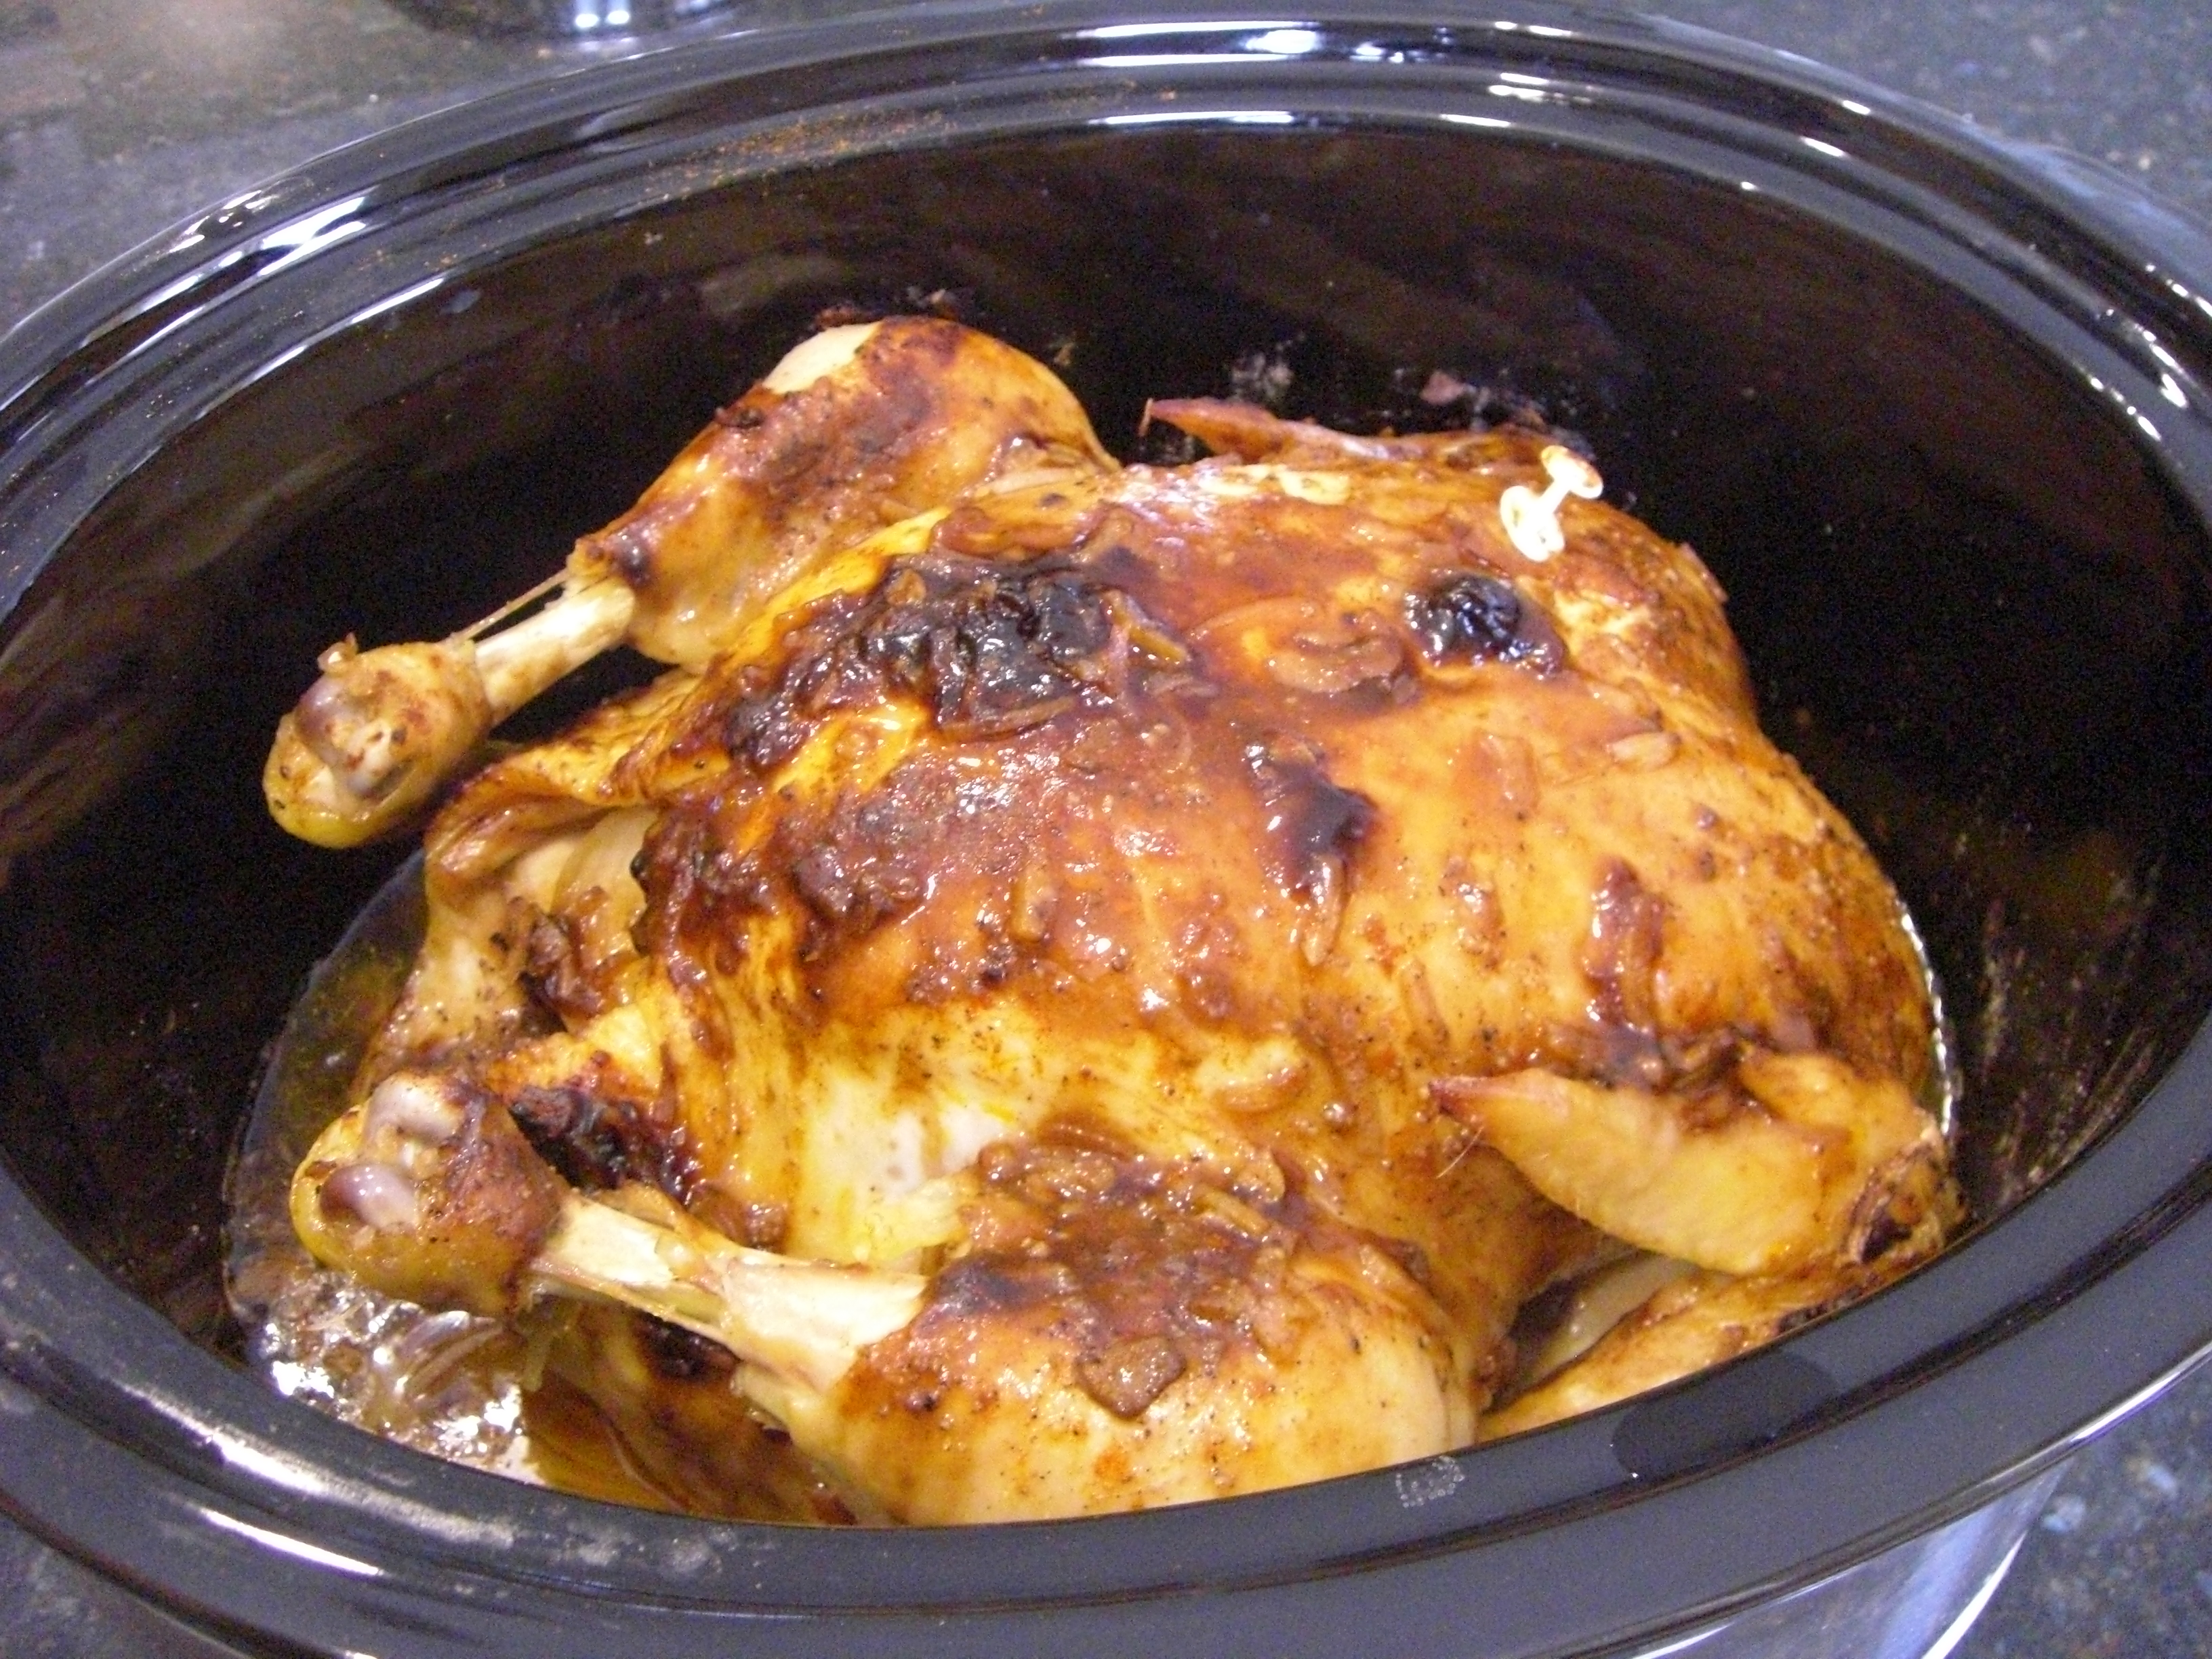 The Best Crock Pot Chicken Recipes on Yummly | Mozzarella And Pesto Chicken In A Crock Pot, Crock Pot Creamy Ranch Chicken, Crock Pot Chicken And Noodles.